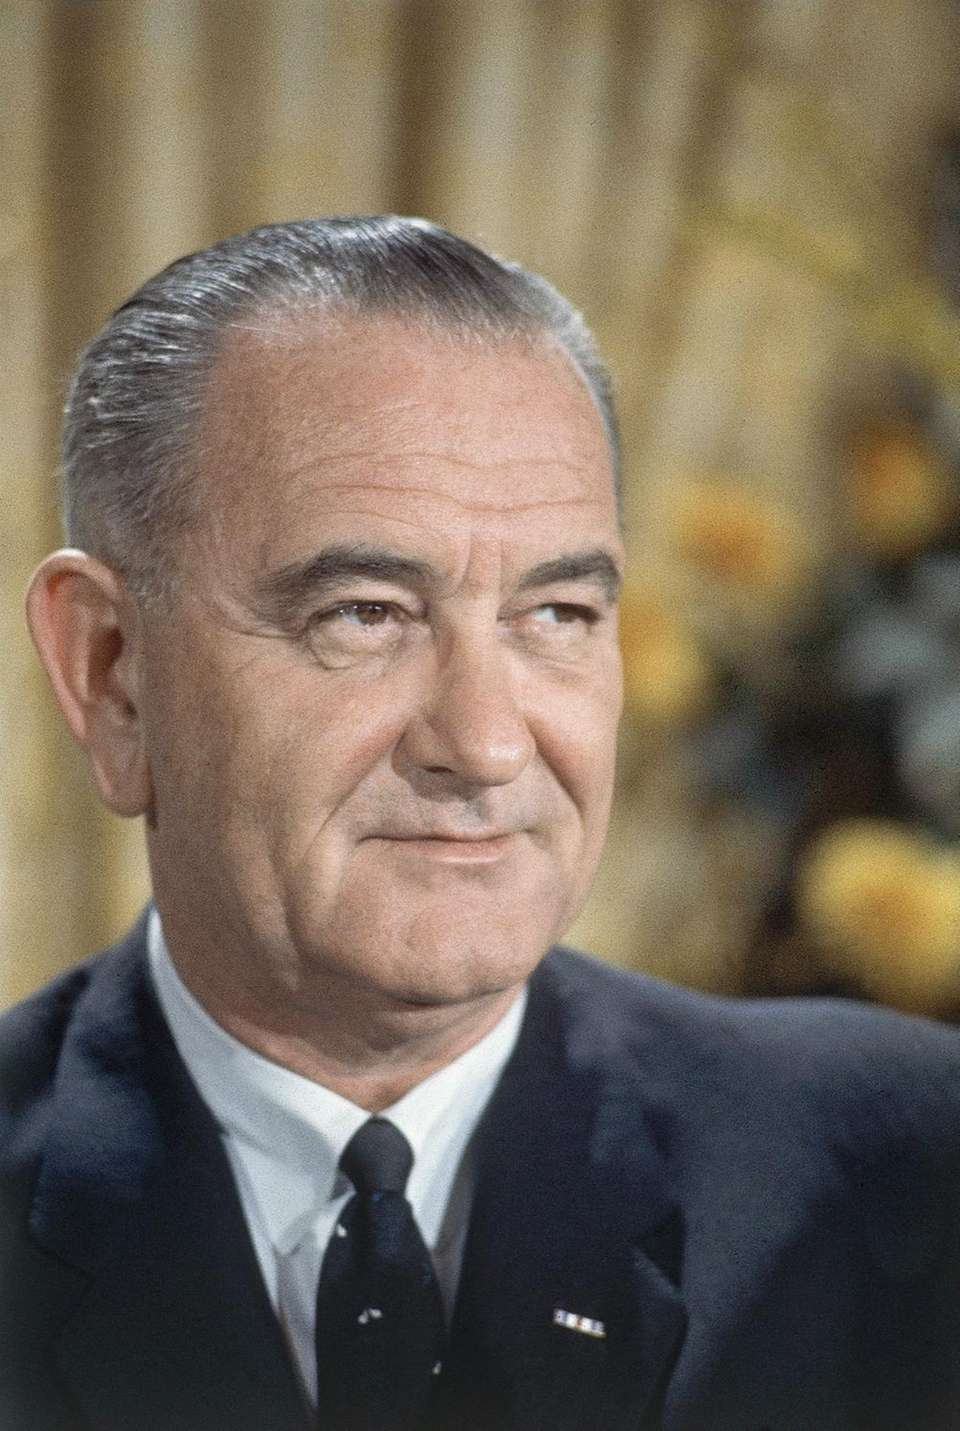 LYNDON B. JOHNSON, 1964 Seven weeks after John